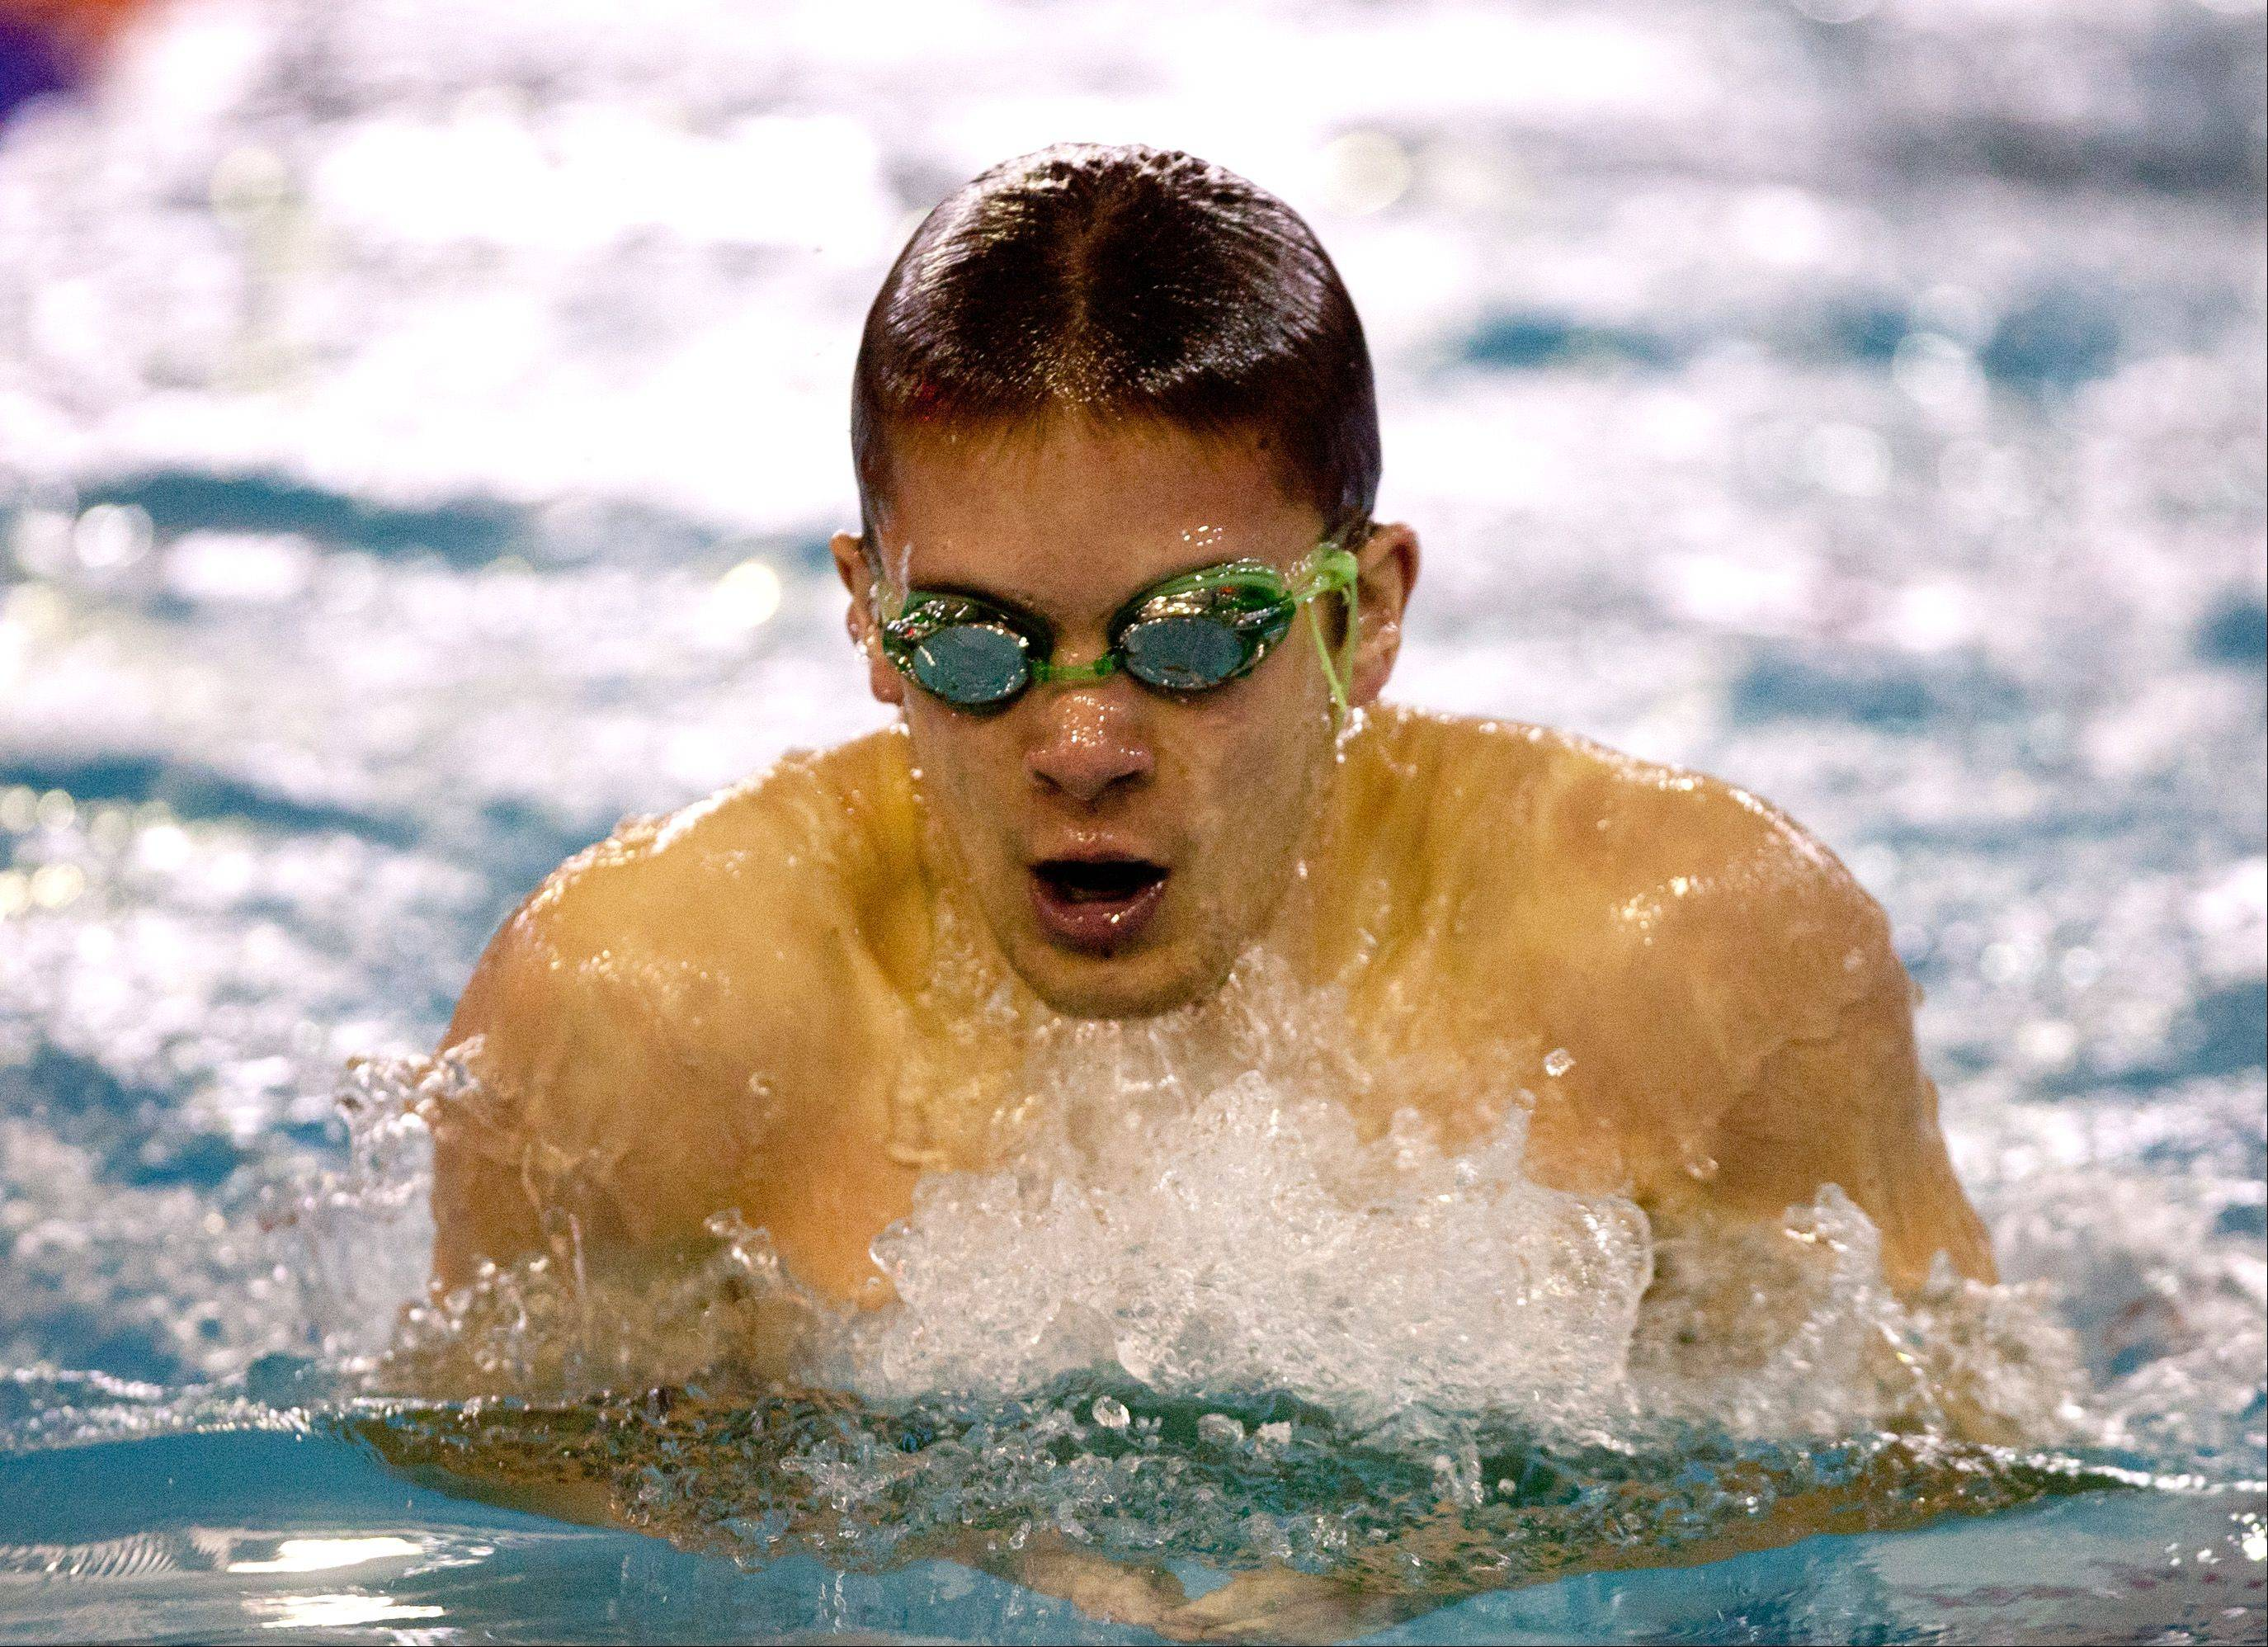 Kevin Kielma of Naperville North High School, swims the 200 yard IM, during the DVC Swimming Conference Championship held at Naperville North High School.